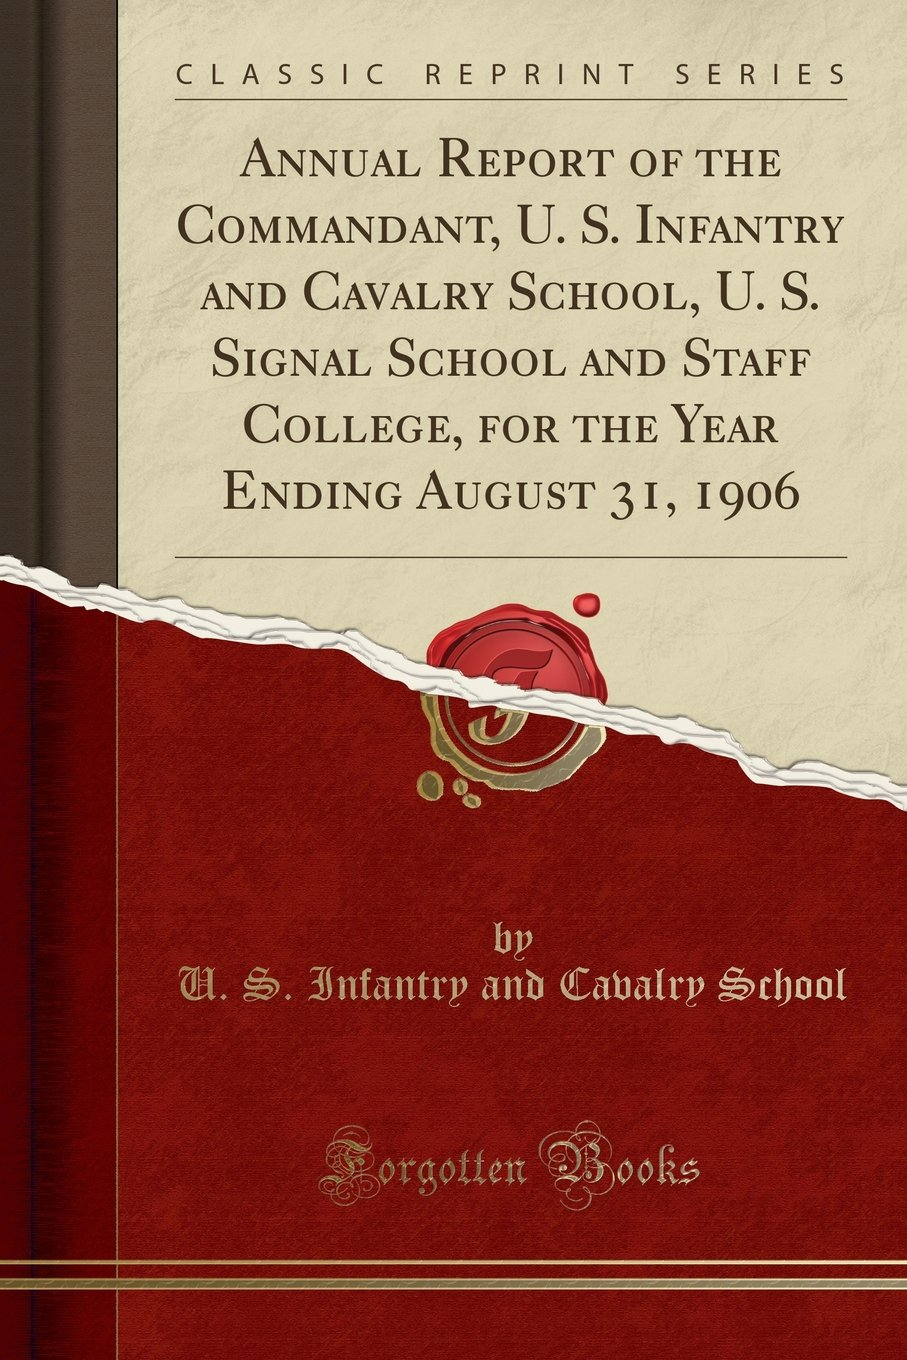 Download Annual Report of the Commandant, U. S. Infantry and Cavalry School, U. S. Signal School and Staff College, for the Year Ending August 31, 1906 (Classic Reprint) pdf